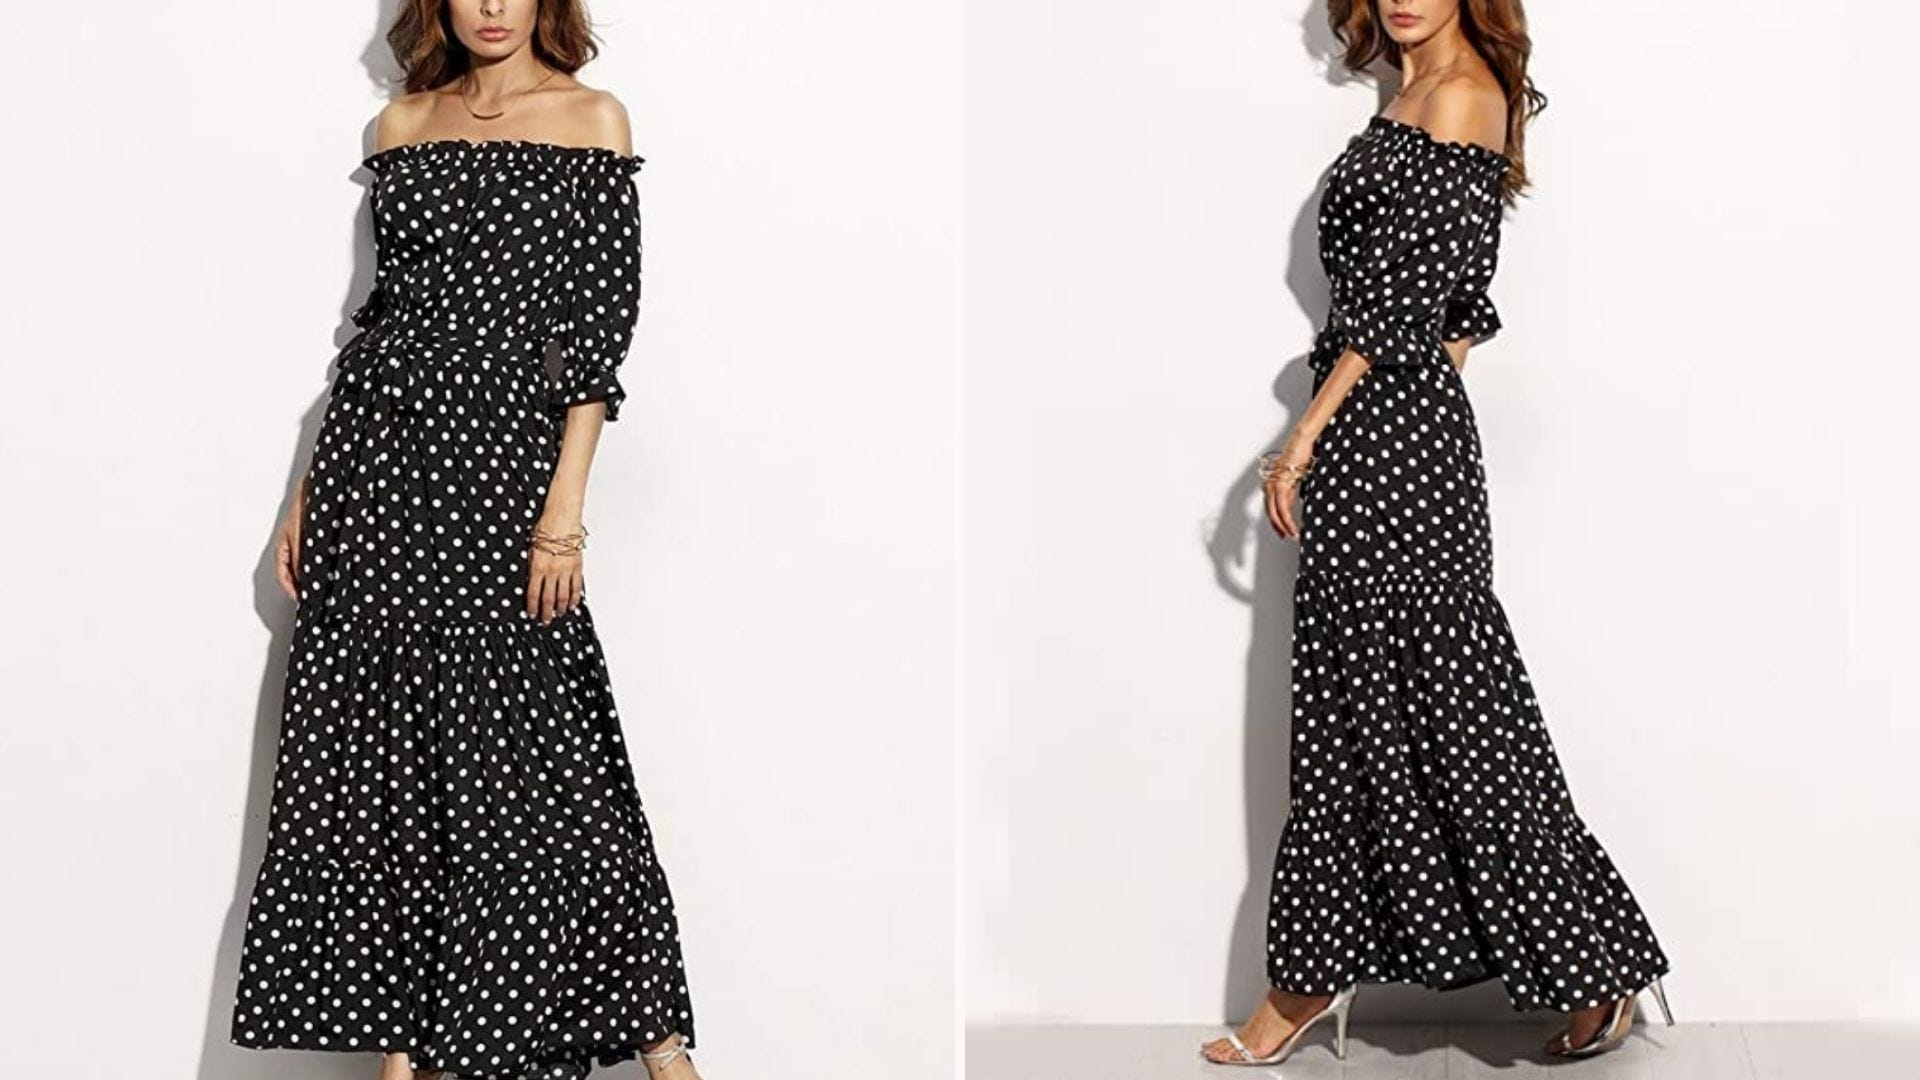 Front and side view of a woman wearing a black and white polka dot off-shoulder maxi dress